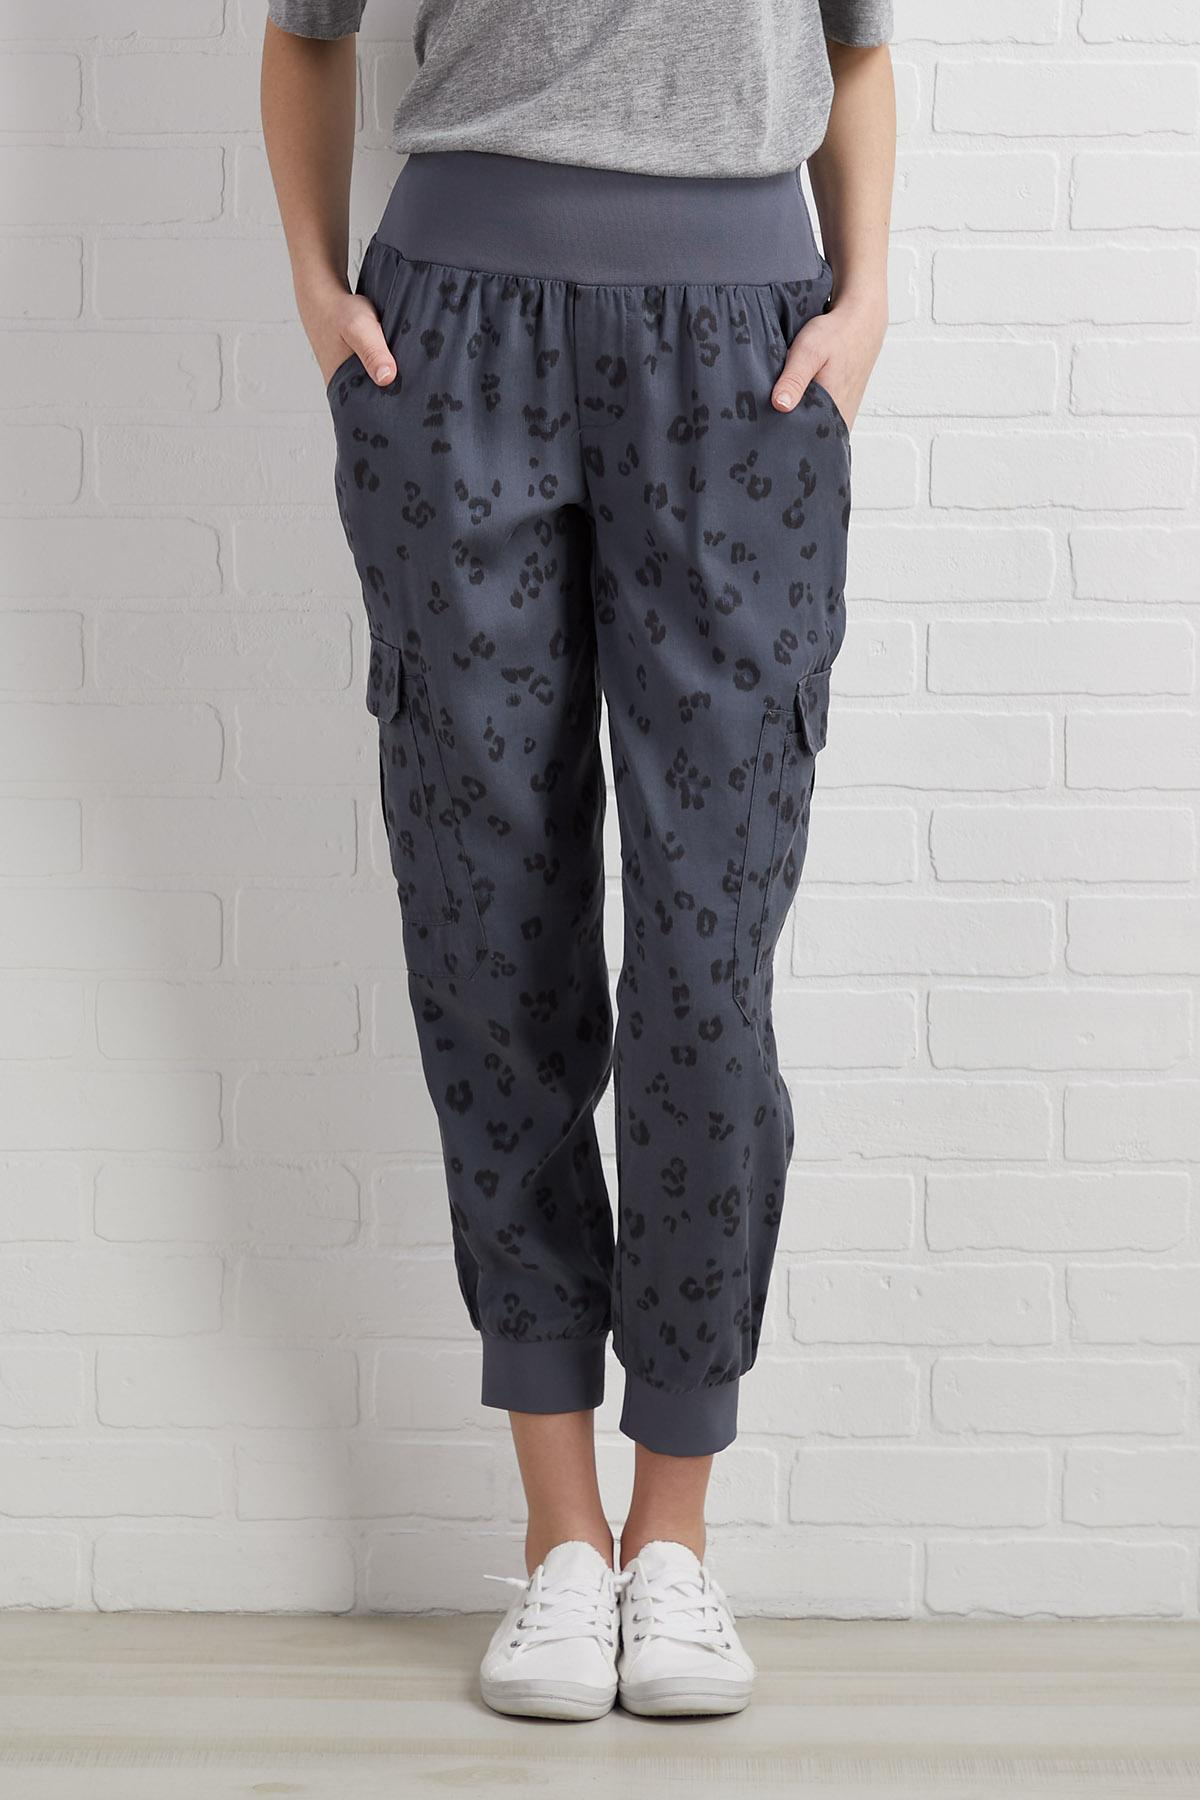 On The Hunt Pants